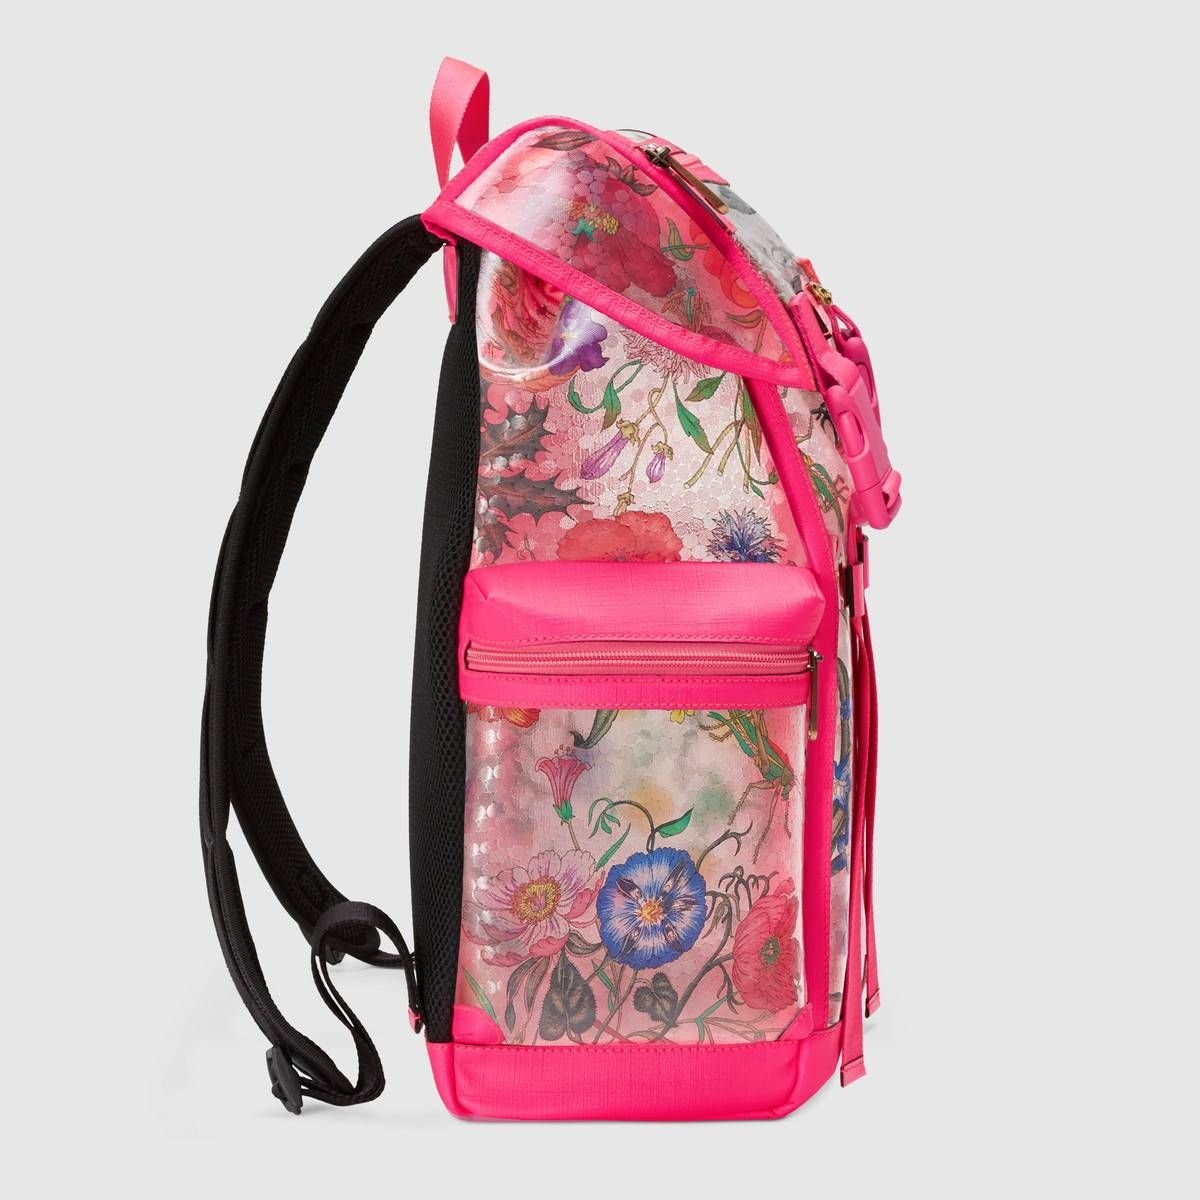 3bea5c1618b9 Shop the Flora print vinyl medium backpack by Gucci. Designed by Vittorio  Accornero over 50